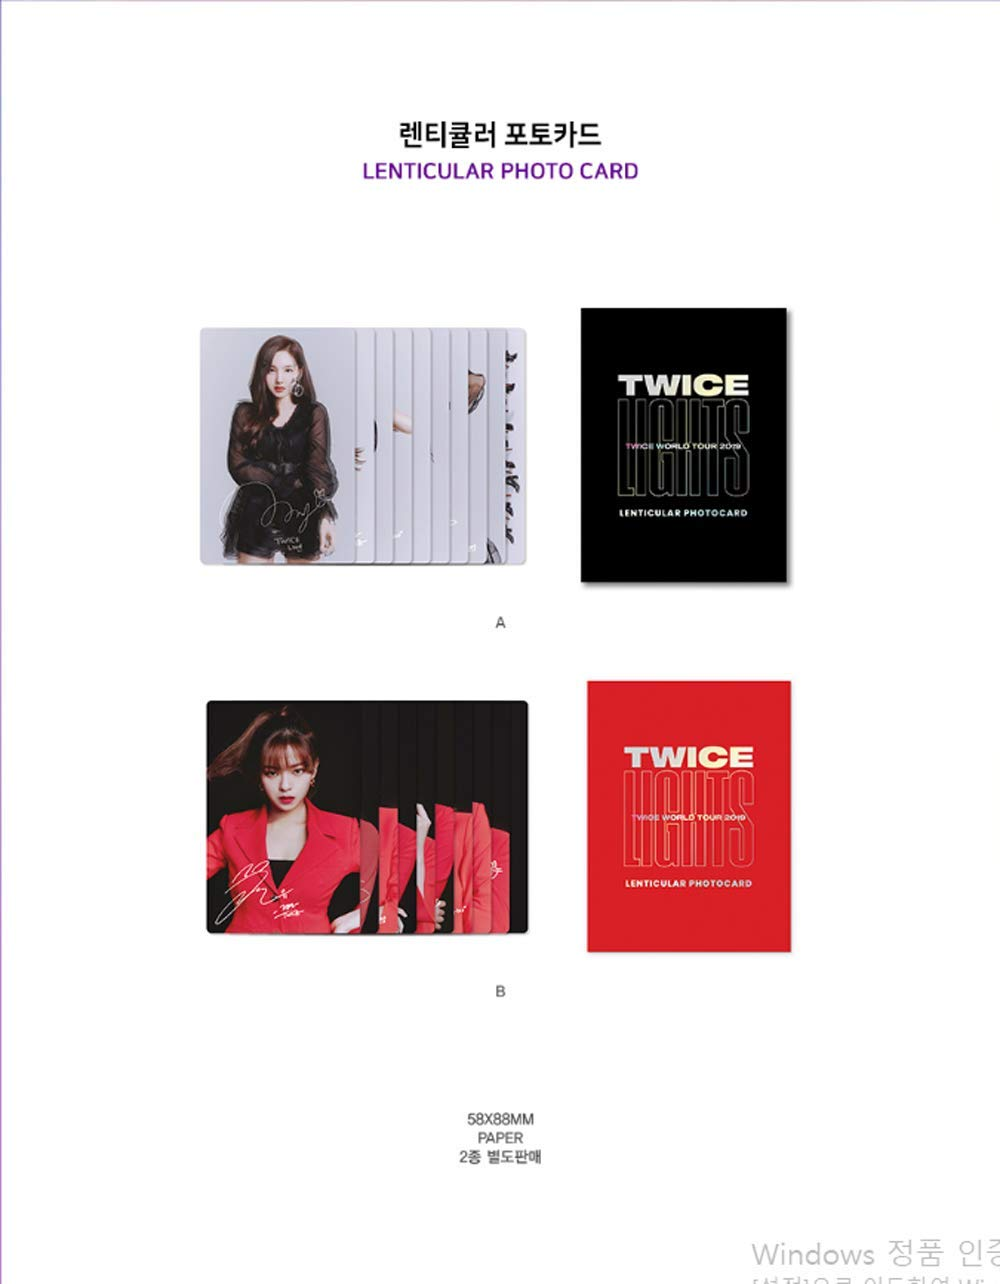 Twice World Tour 2019 Twicelights Lenticular Photo Card (All (A/B)) by Twice World Tour 2019 (Image #1)